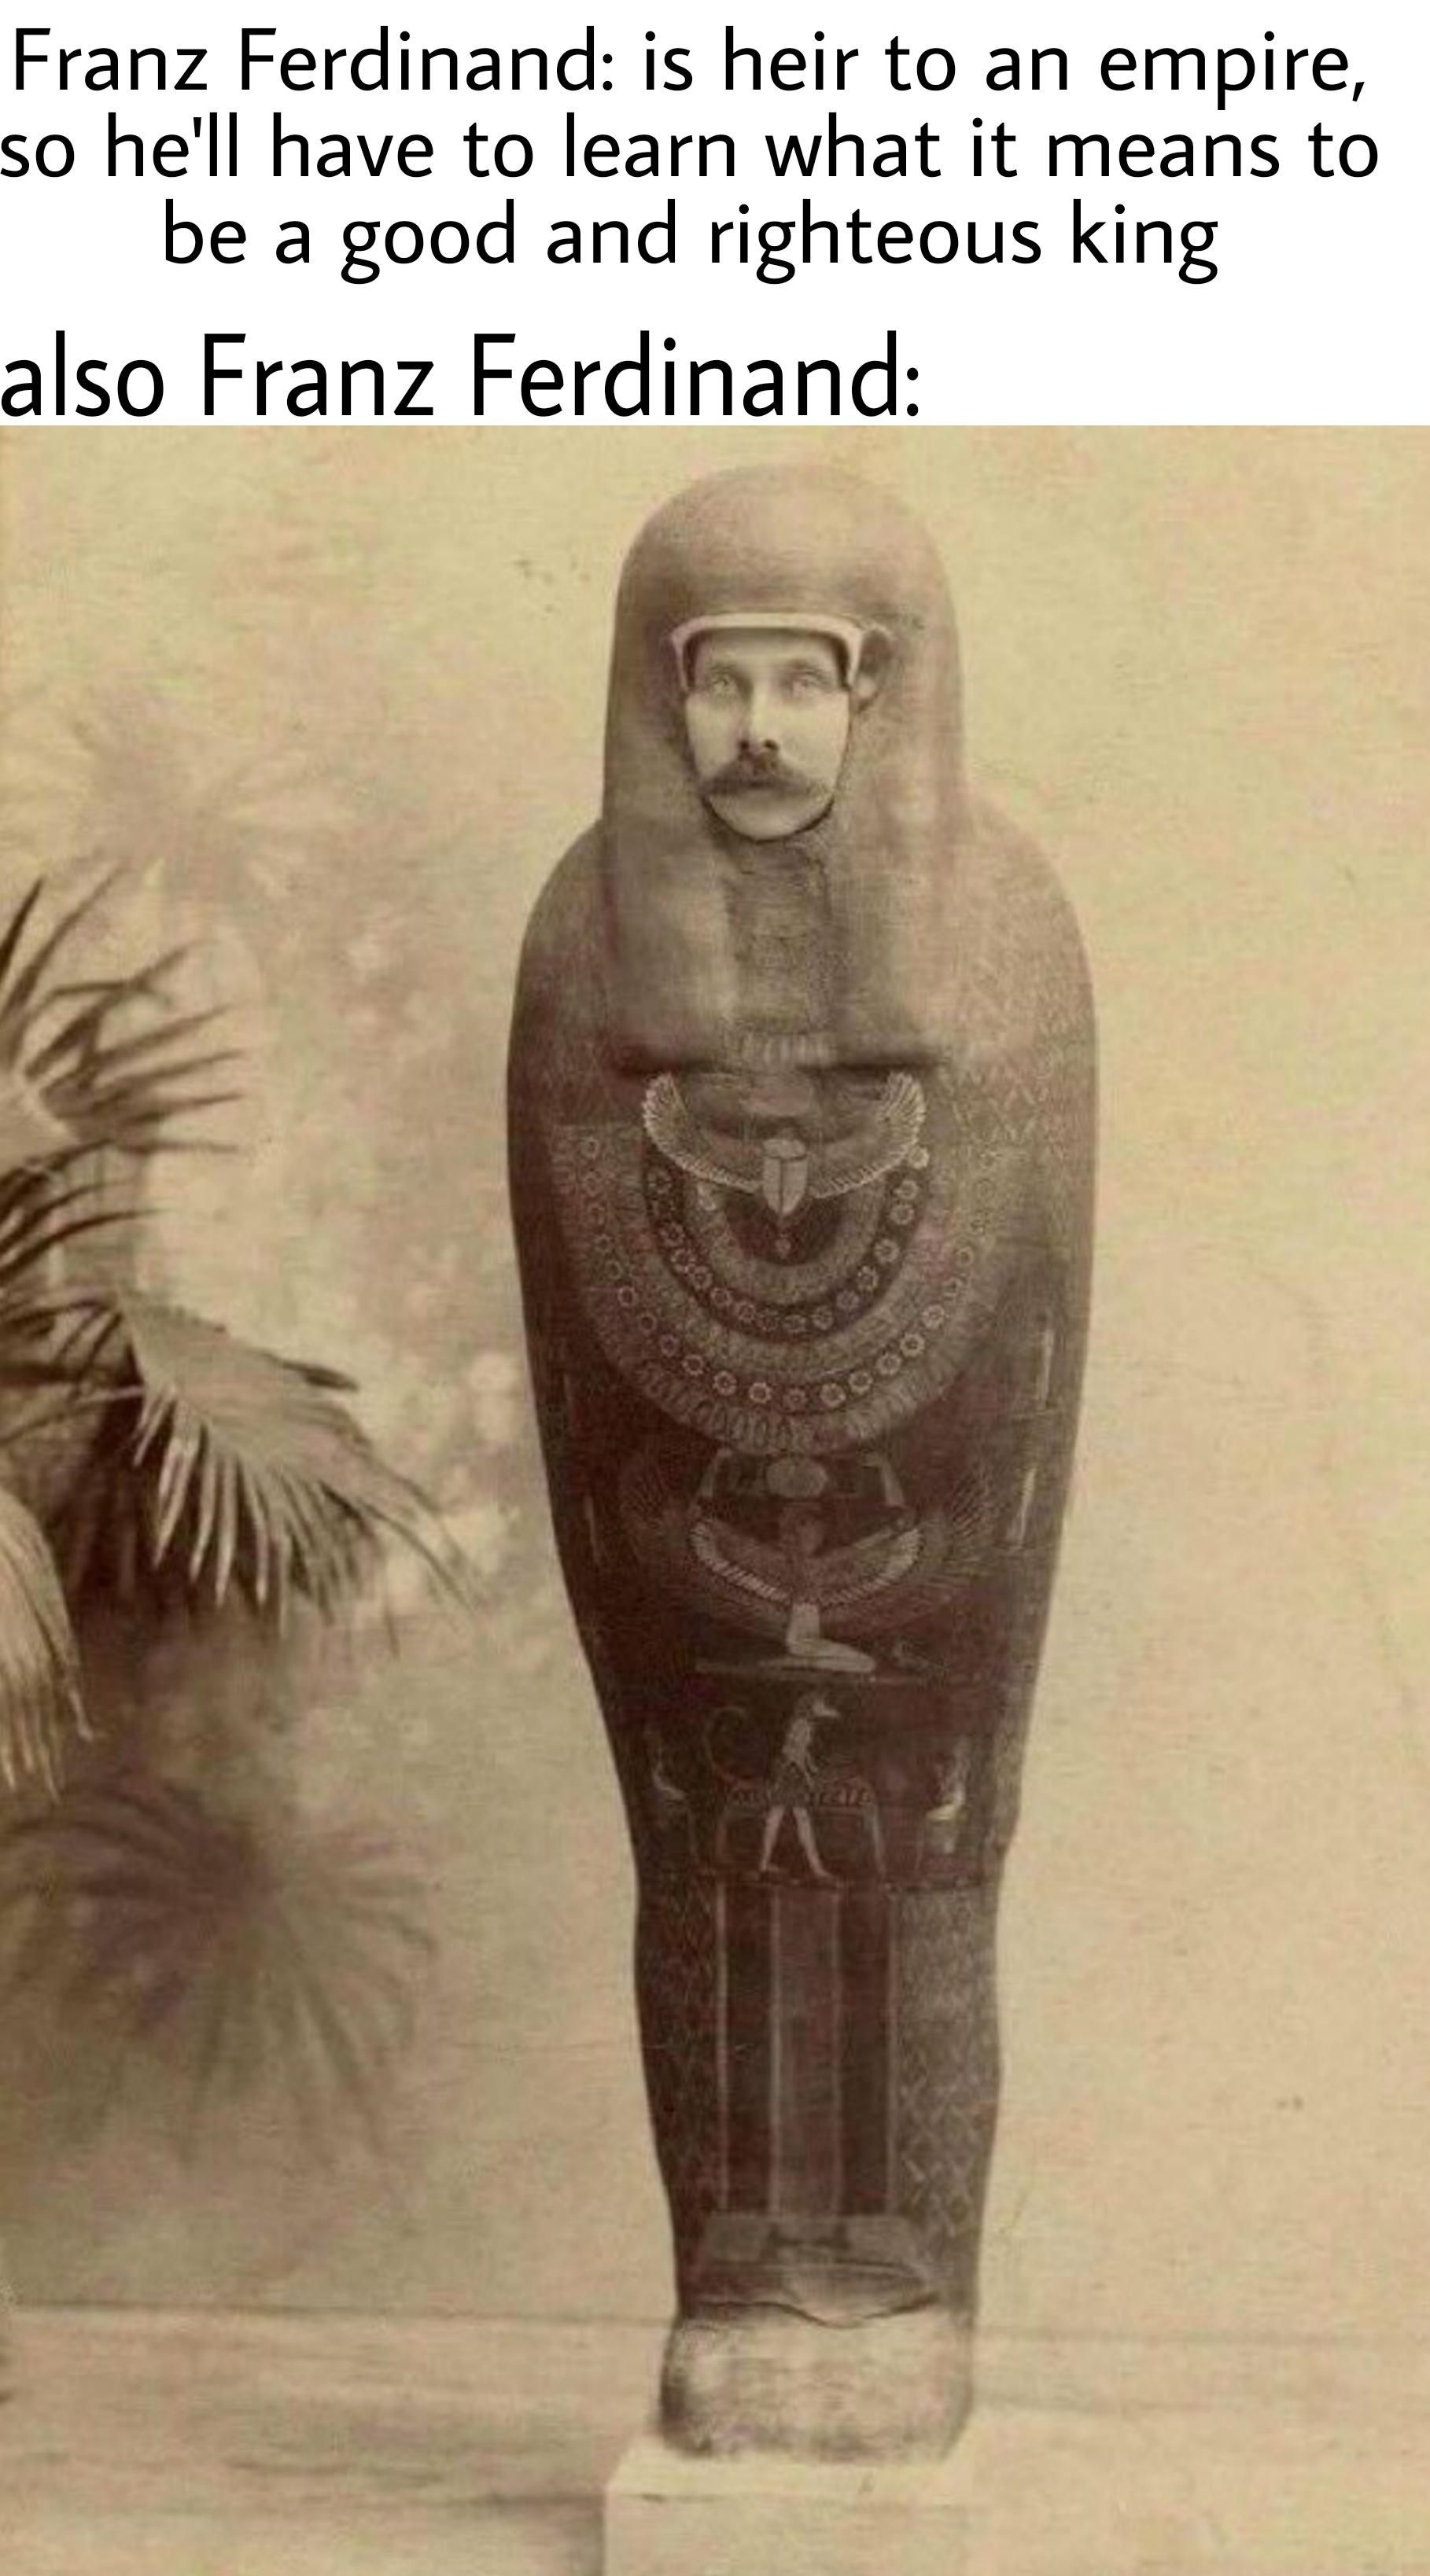 Why yes, that is the Archduke of Austria cosplaying as a mummy